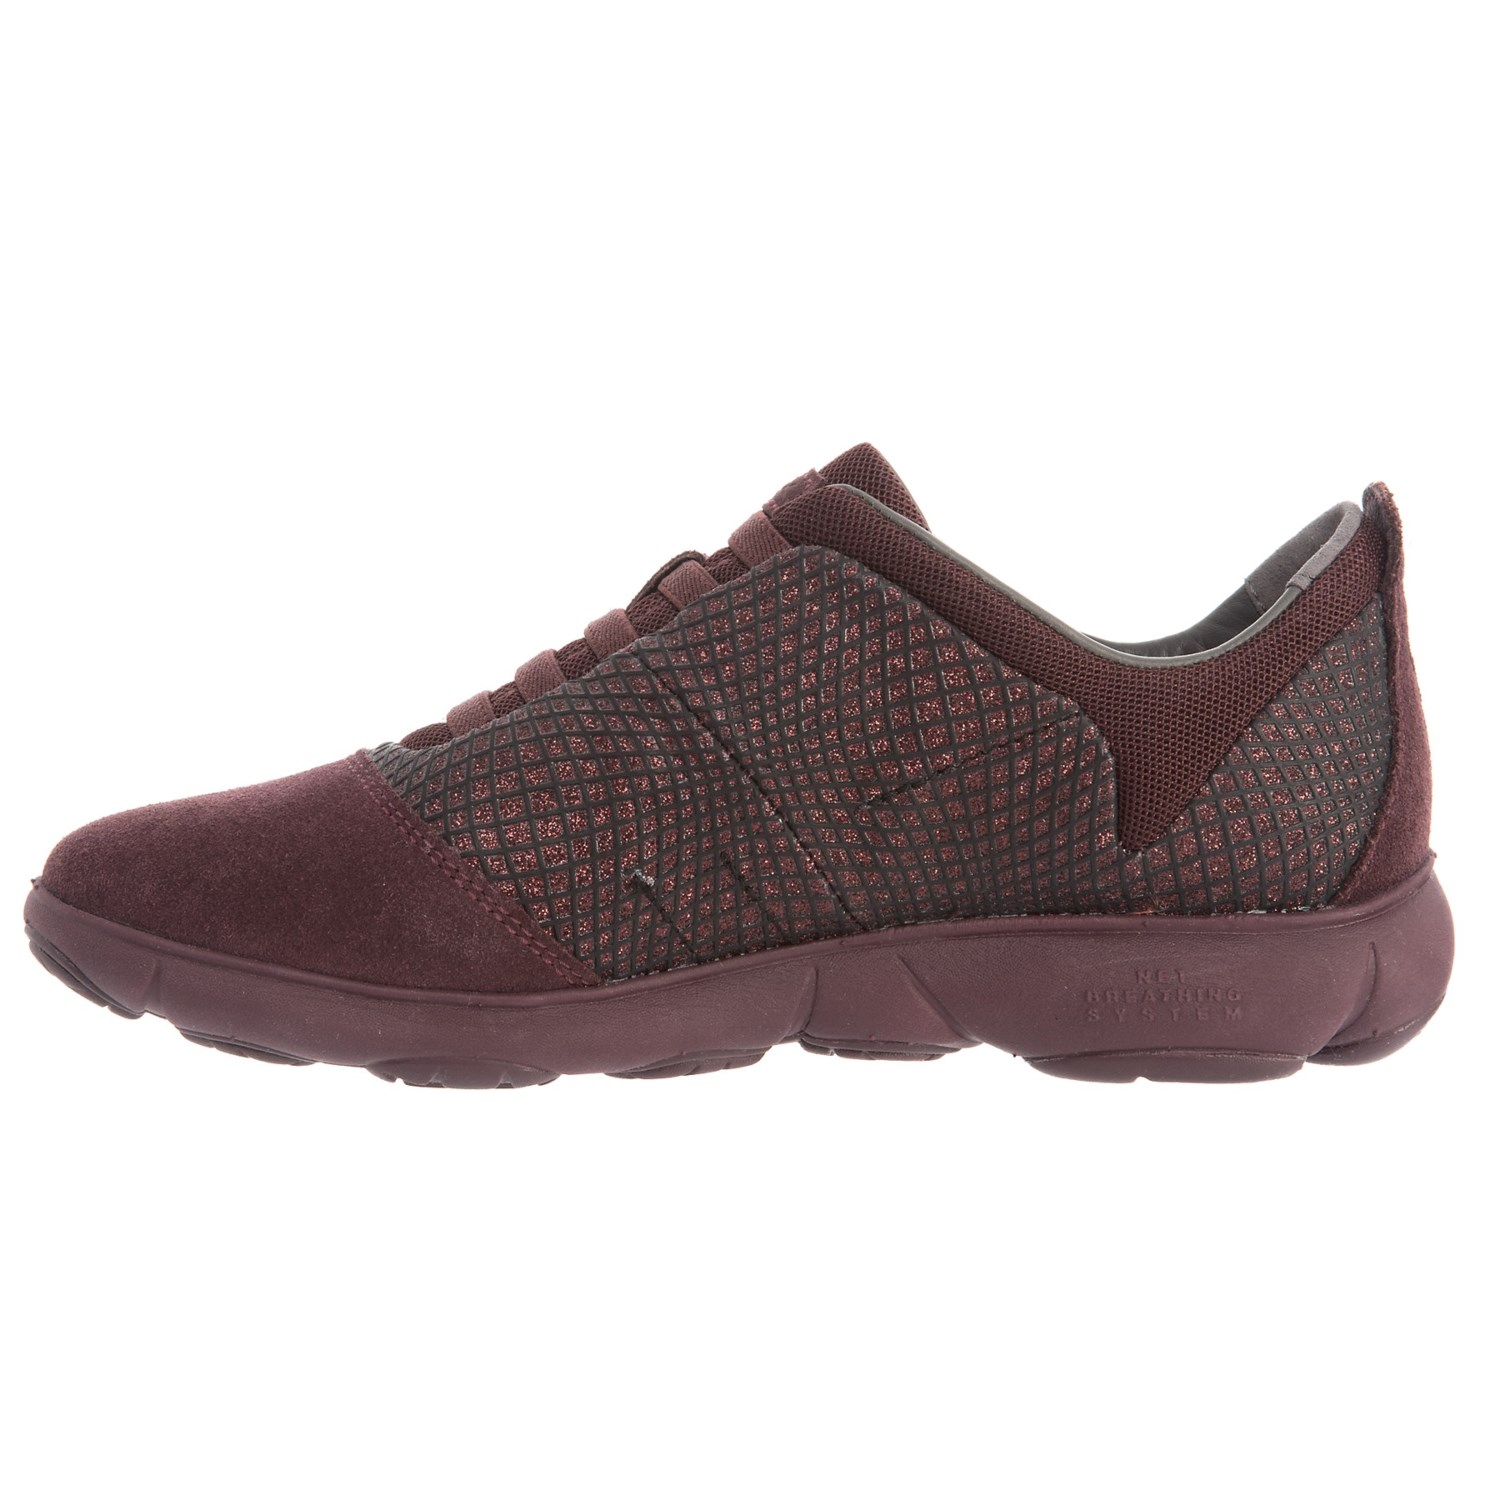 Geox Nebula Sneakers (For Women) - Save 57% bbfb90aebe